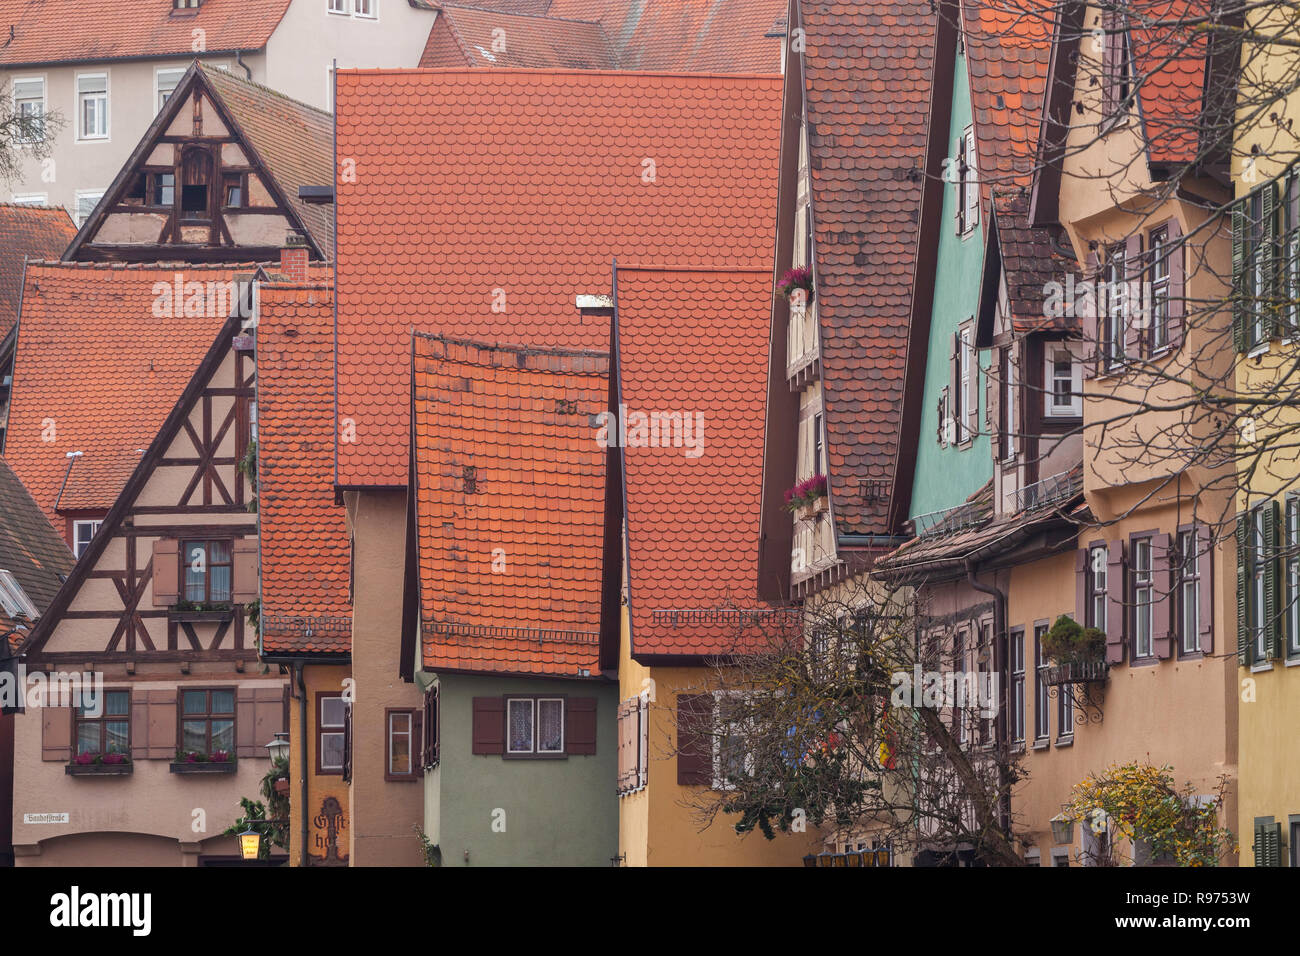 Red roofs, Dinkelsbuhl, Germany - Stock Image